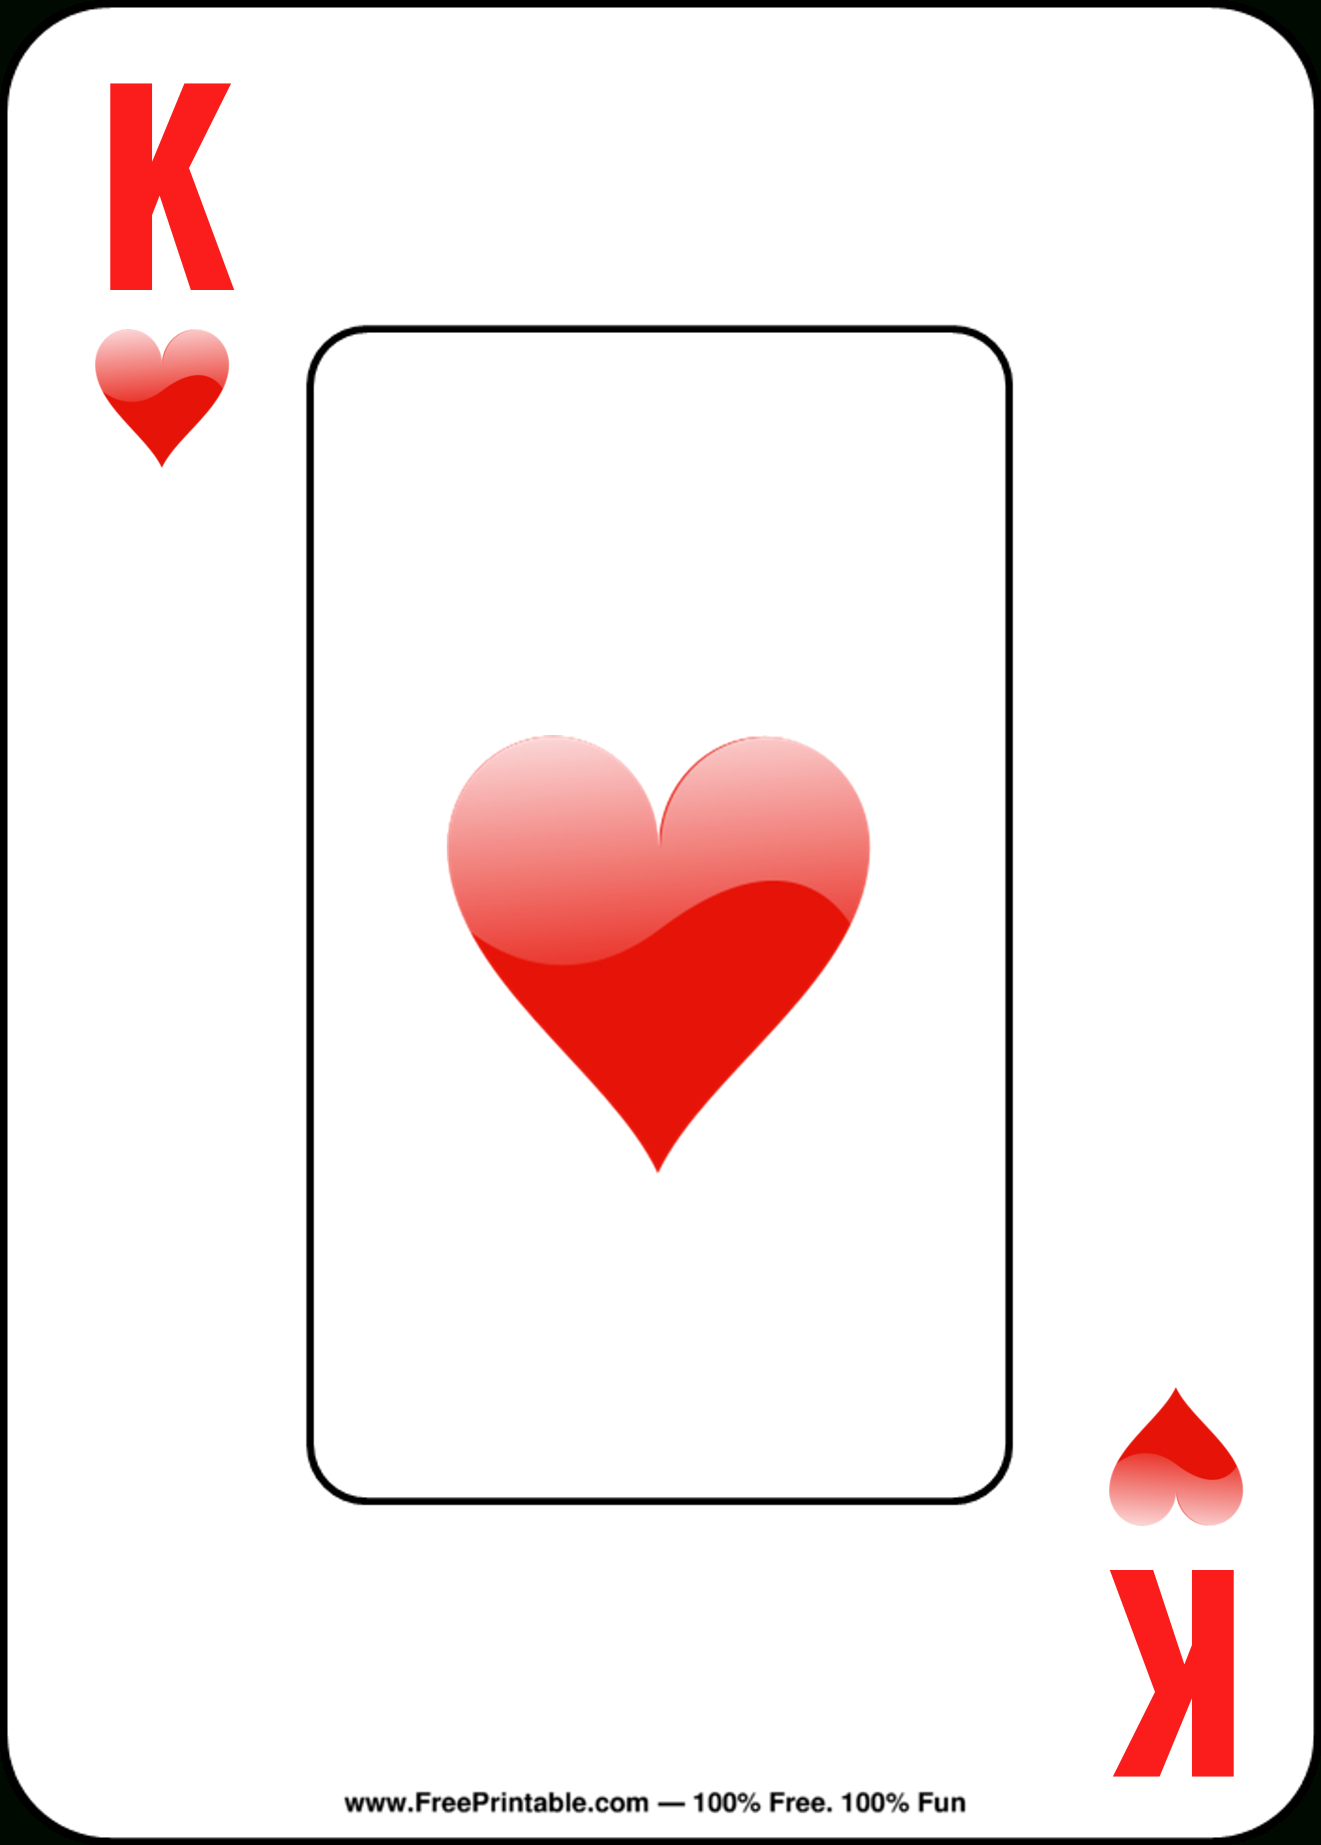 Free Printable Playing Cards - Free Printable Deck Of Cards